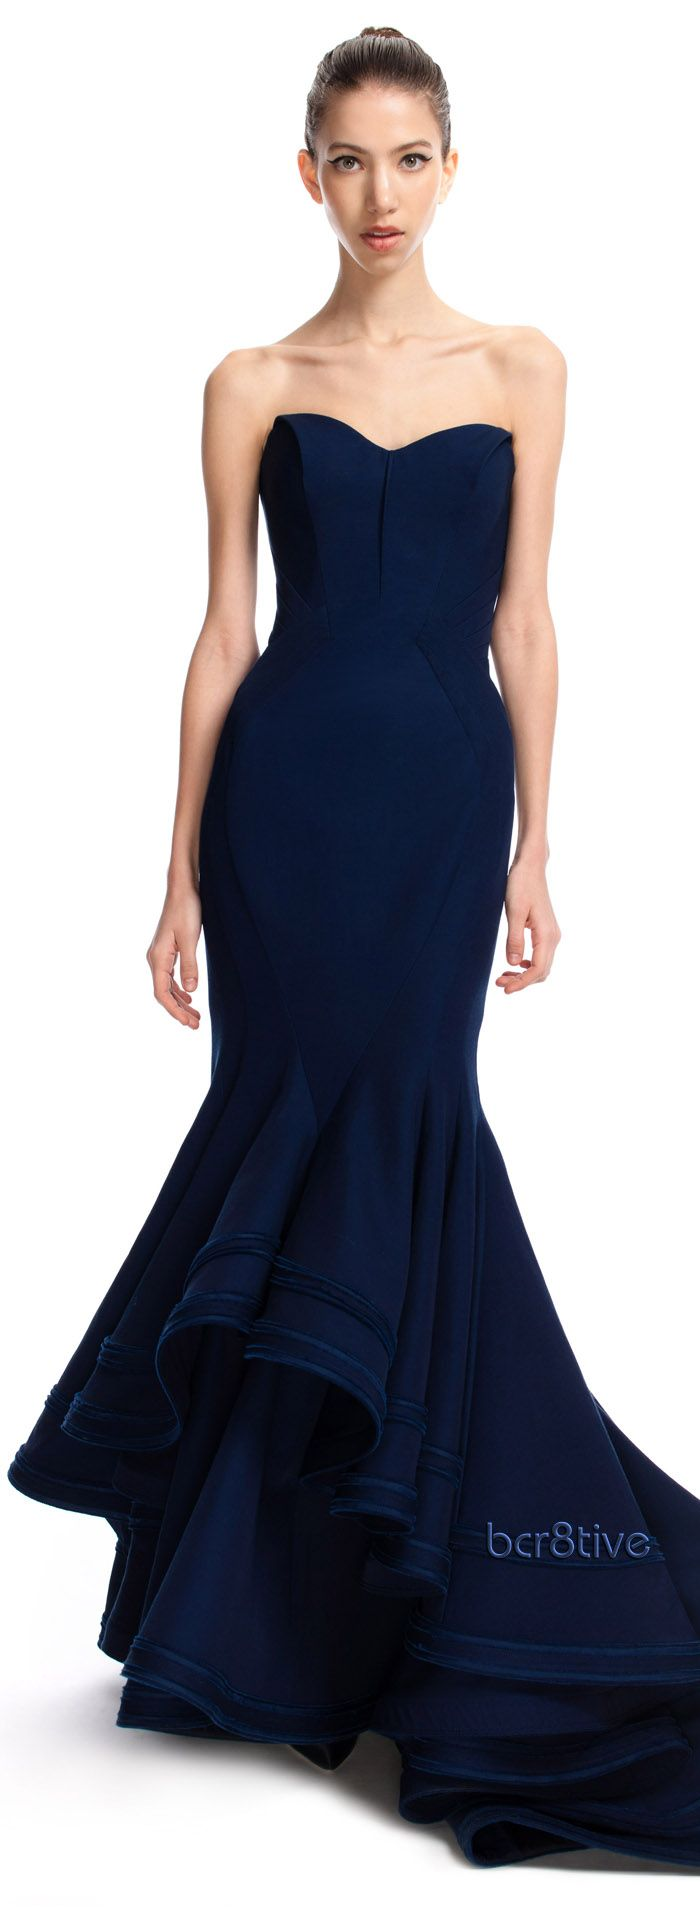 Zac posen violet blue tiered mermaid gown the perfect wedding